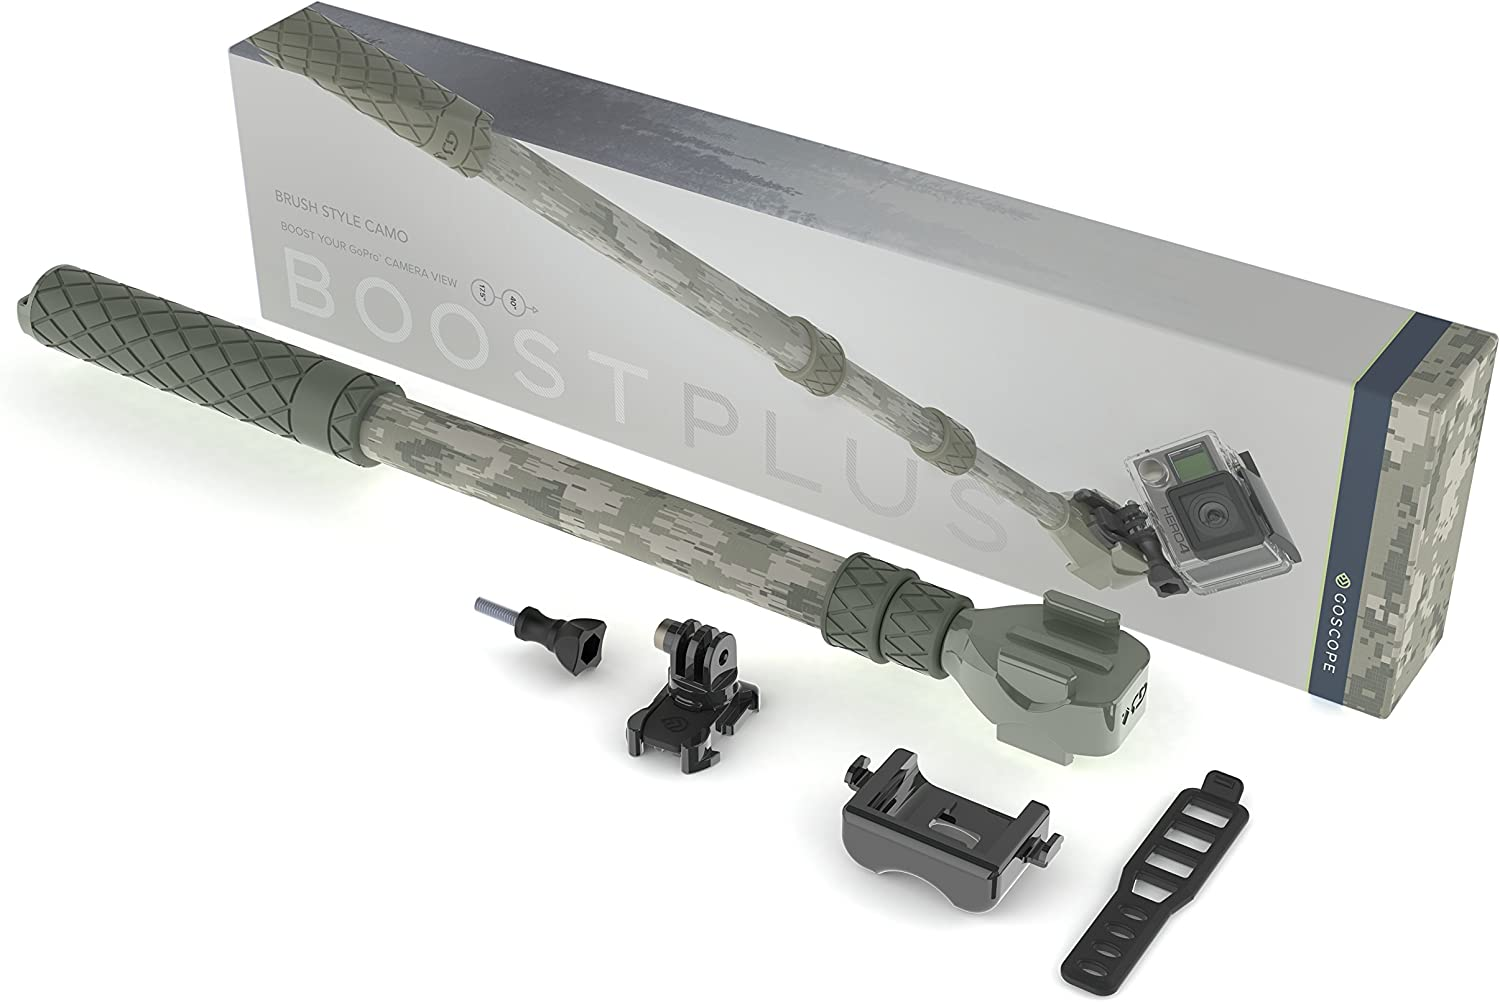 Monopod for GoPro/® Cameras Expands 17.5 out to 40 Telescoping Extension Pole GoScope BOOSTplus Brush Camo